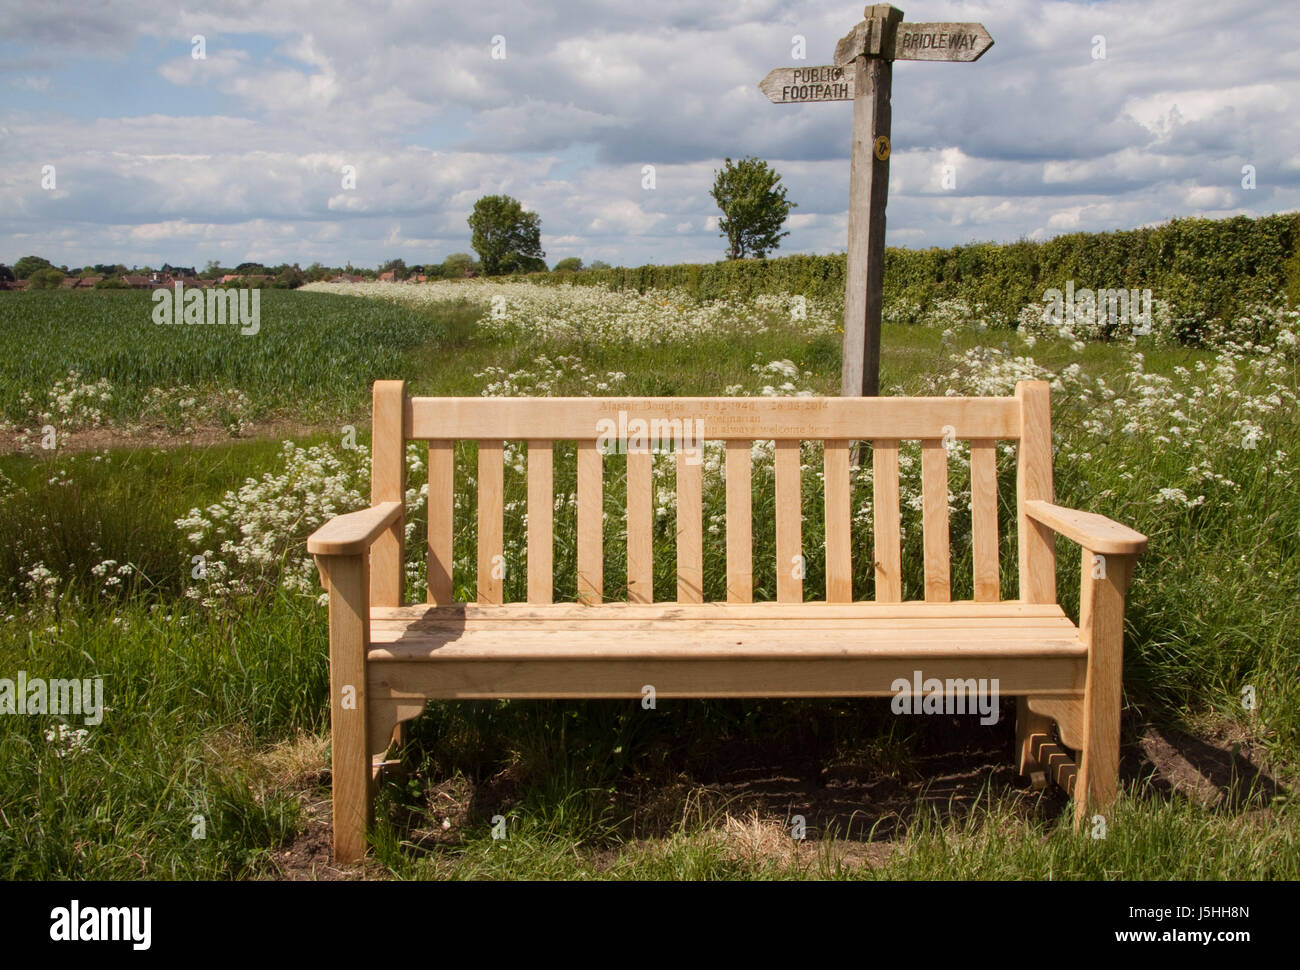 Memorial wooden bench by footpath signpost - Stock Image